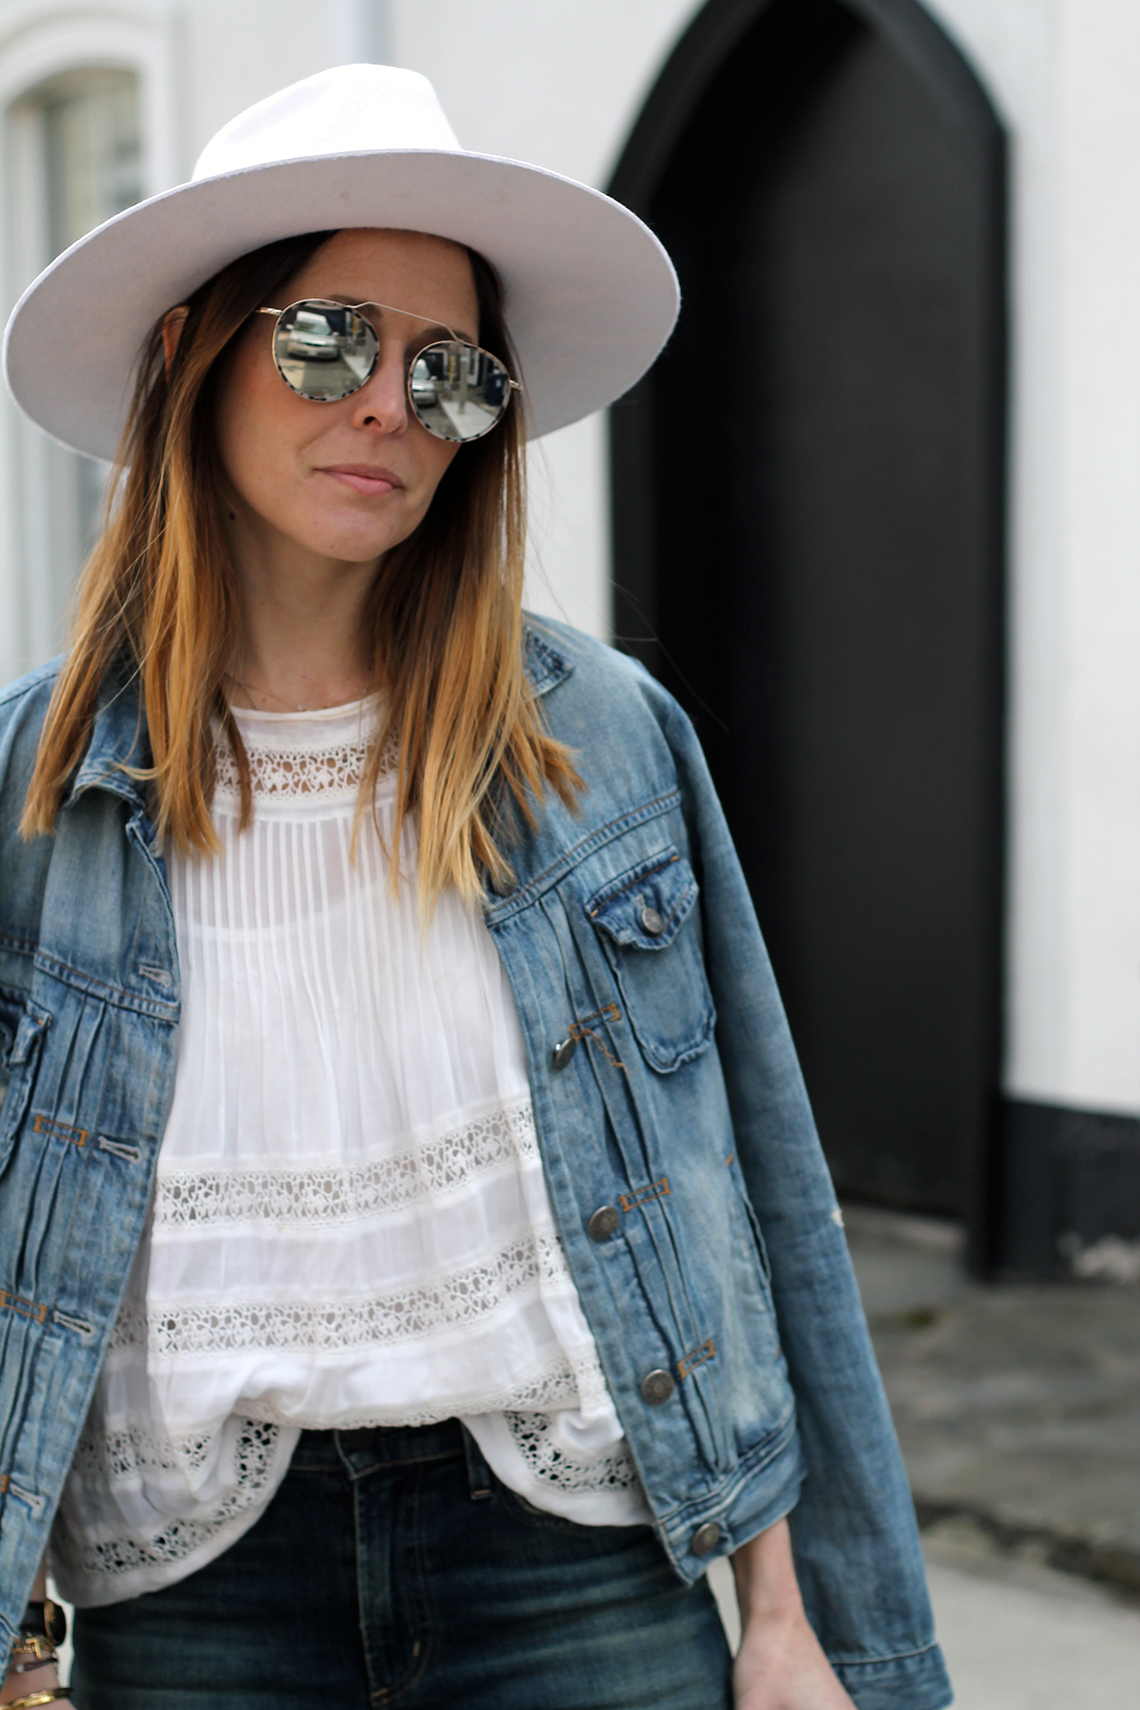 ab2dba6bac24 The denim jacket is a versatile and comfortable wardrobe staple that every  woman needs in her closet. It's one of those very practical pieces that not  only ...